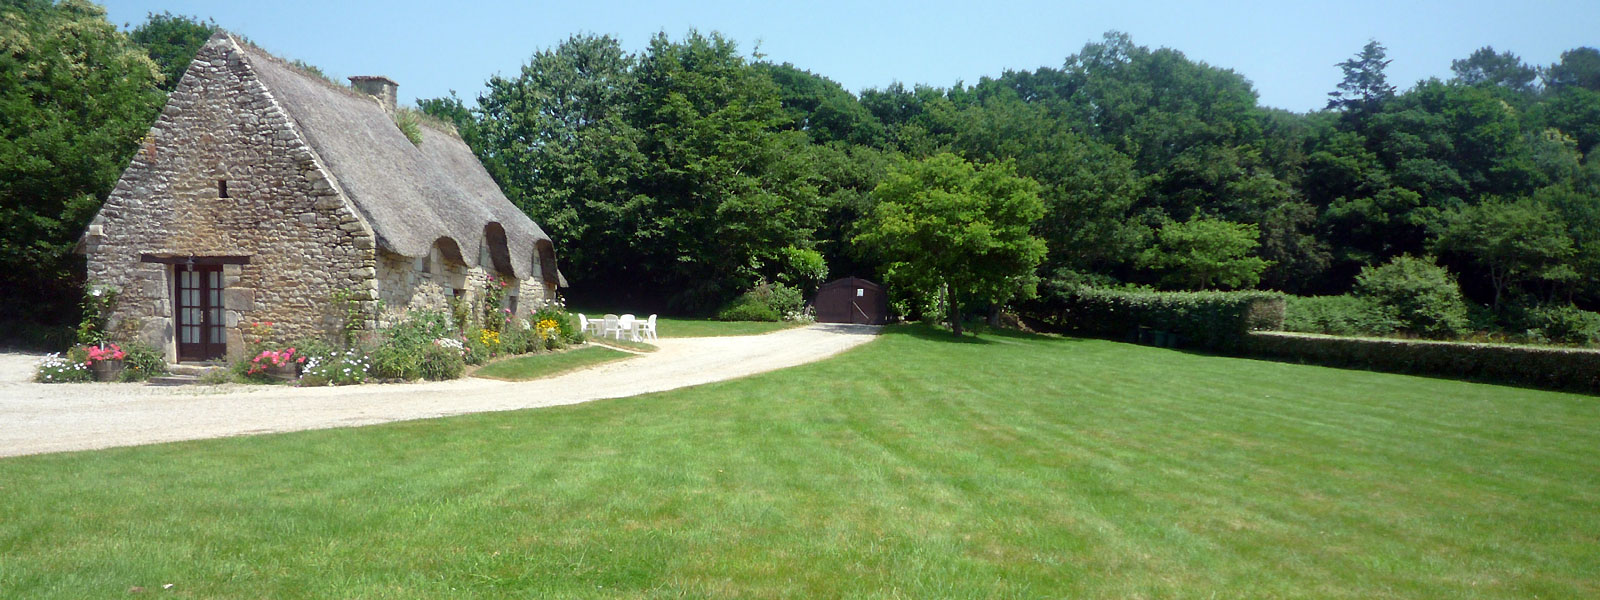 https://www.selectcottages.com/sites/default/files/revslider/image/lawns-at-la-garenne.jpg